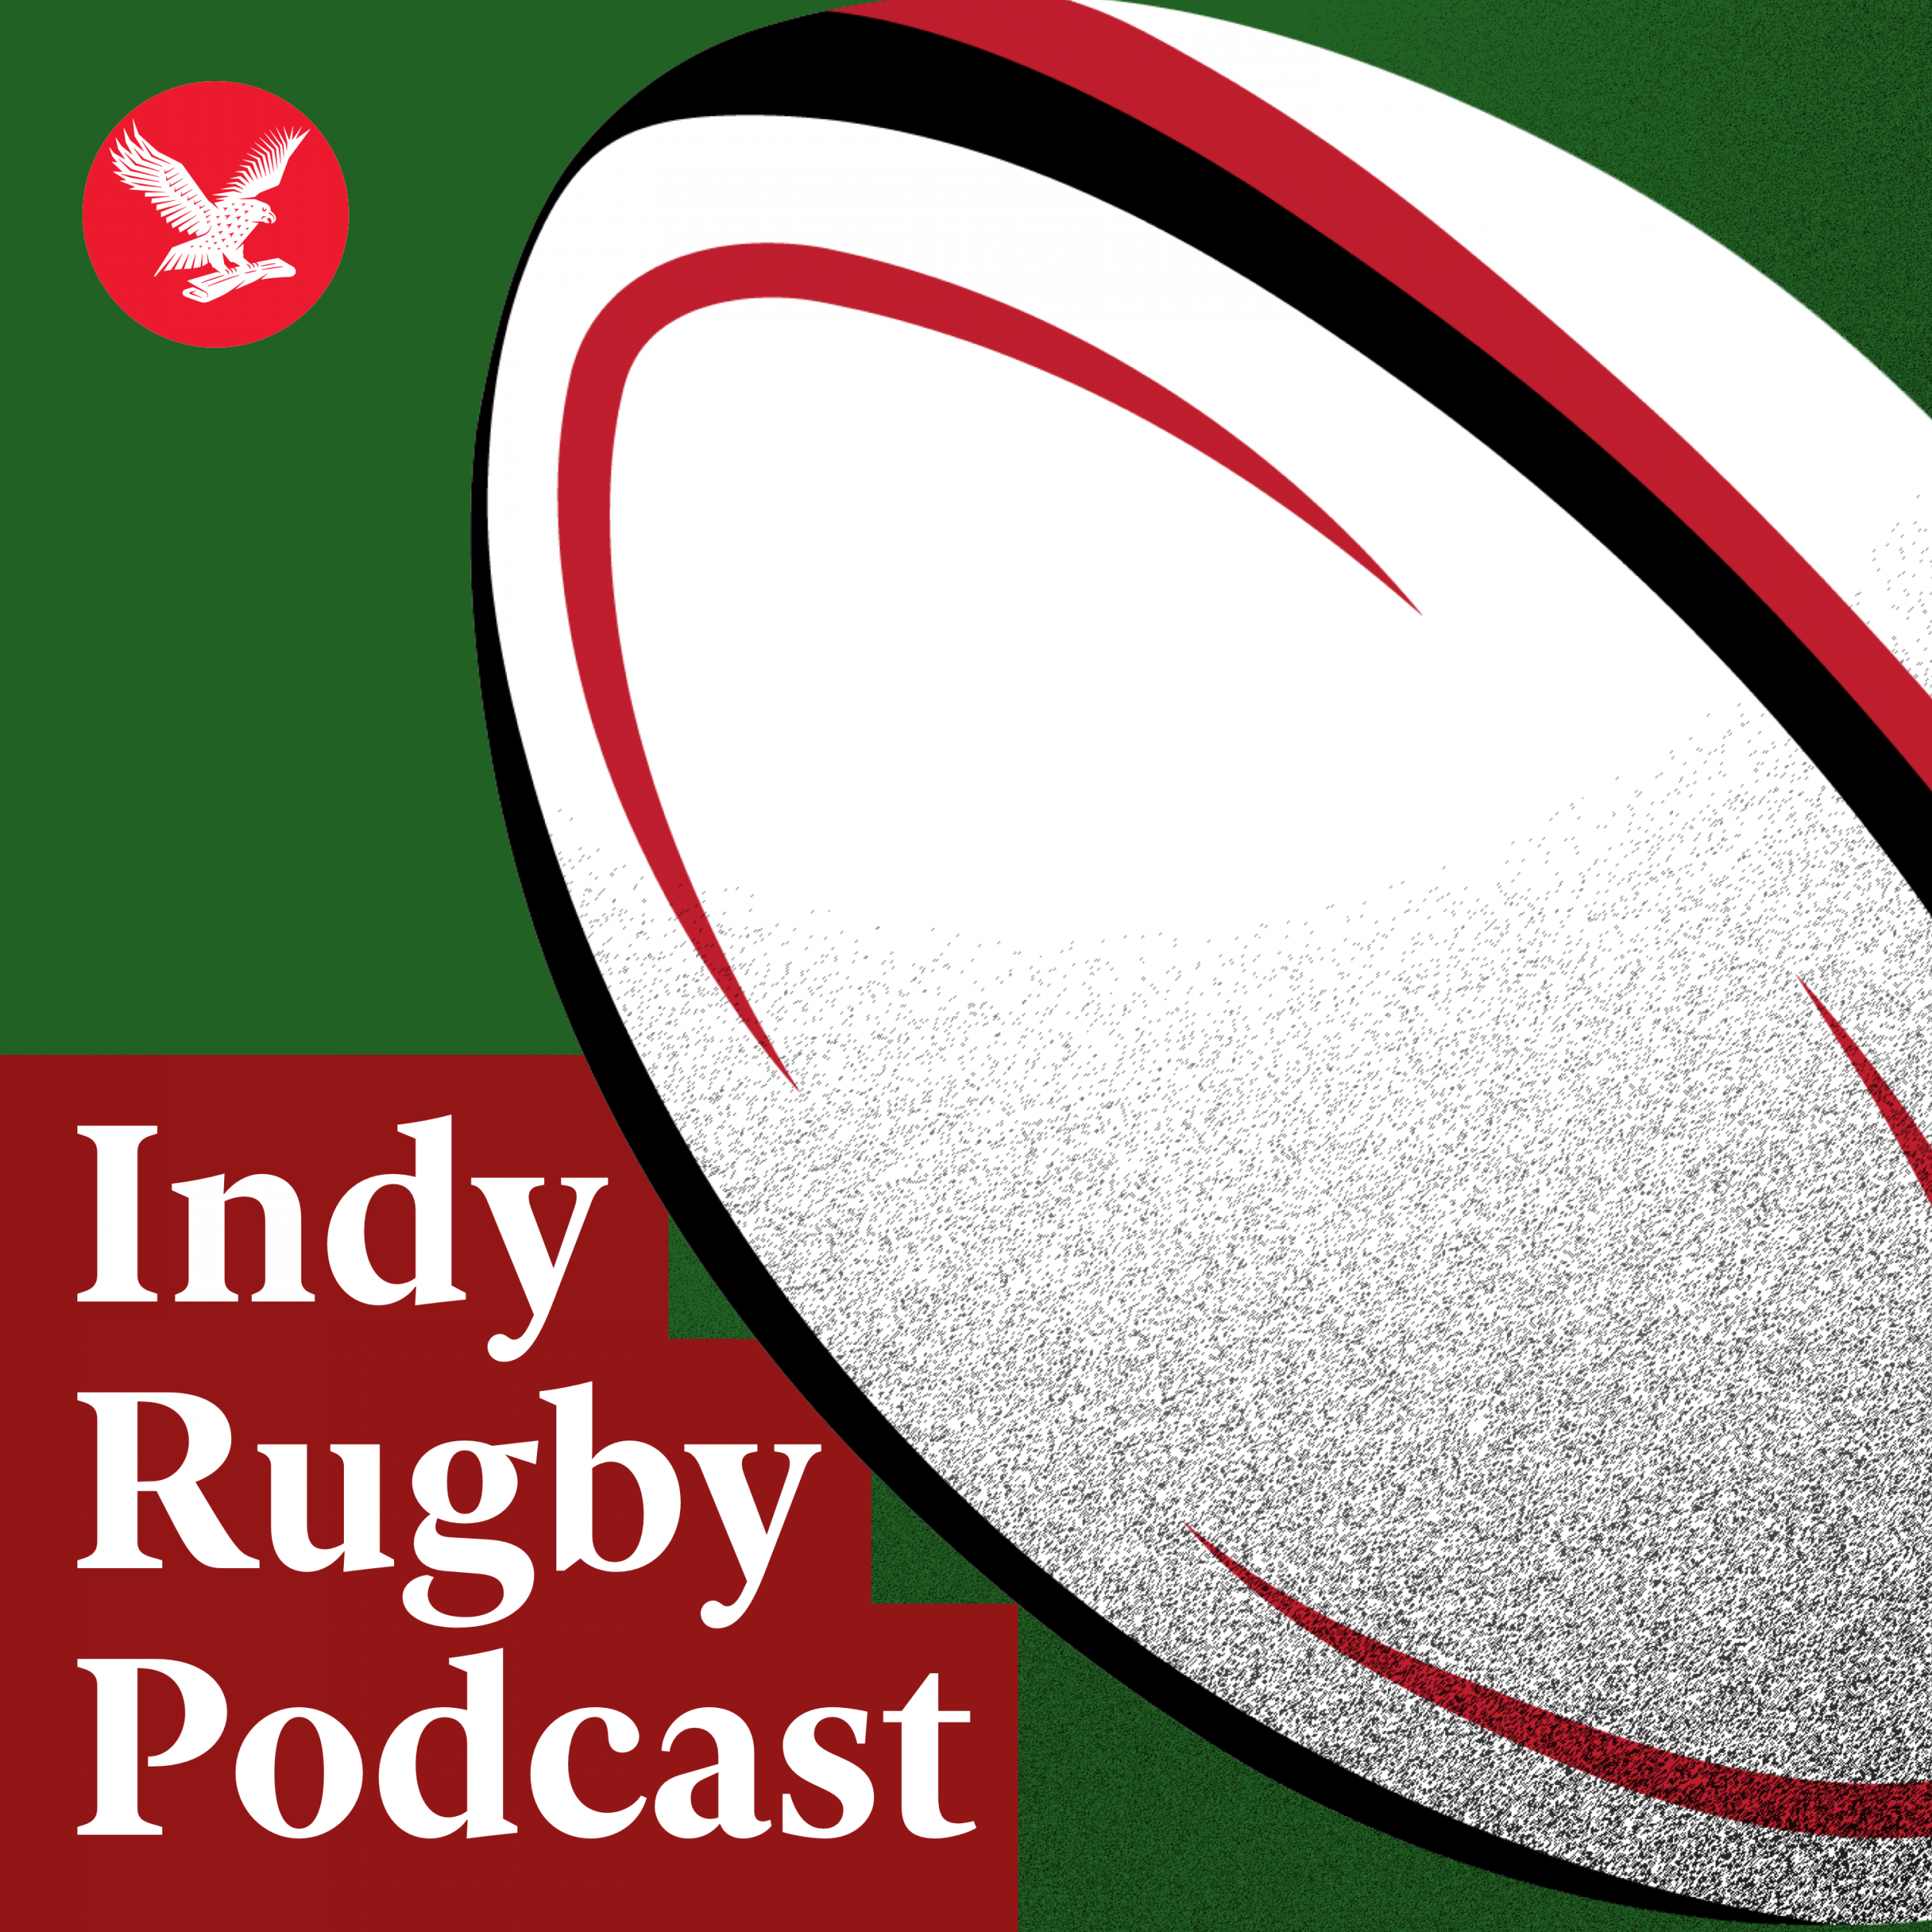 The Indy Rugby Podcast: Can England win in Japan and become world champions?